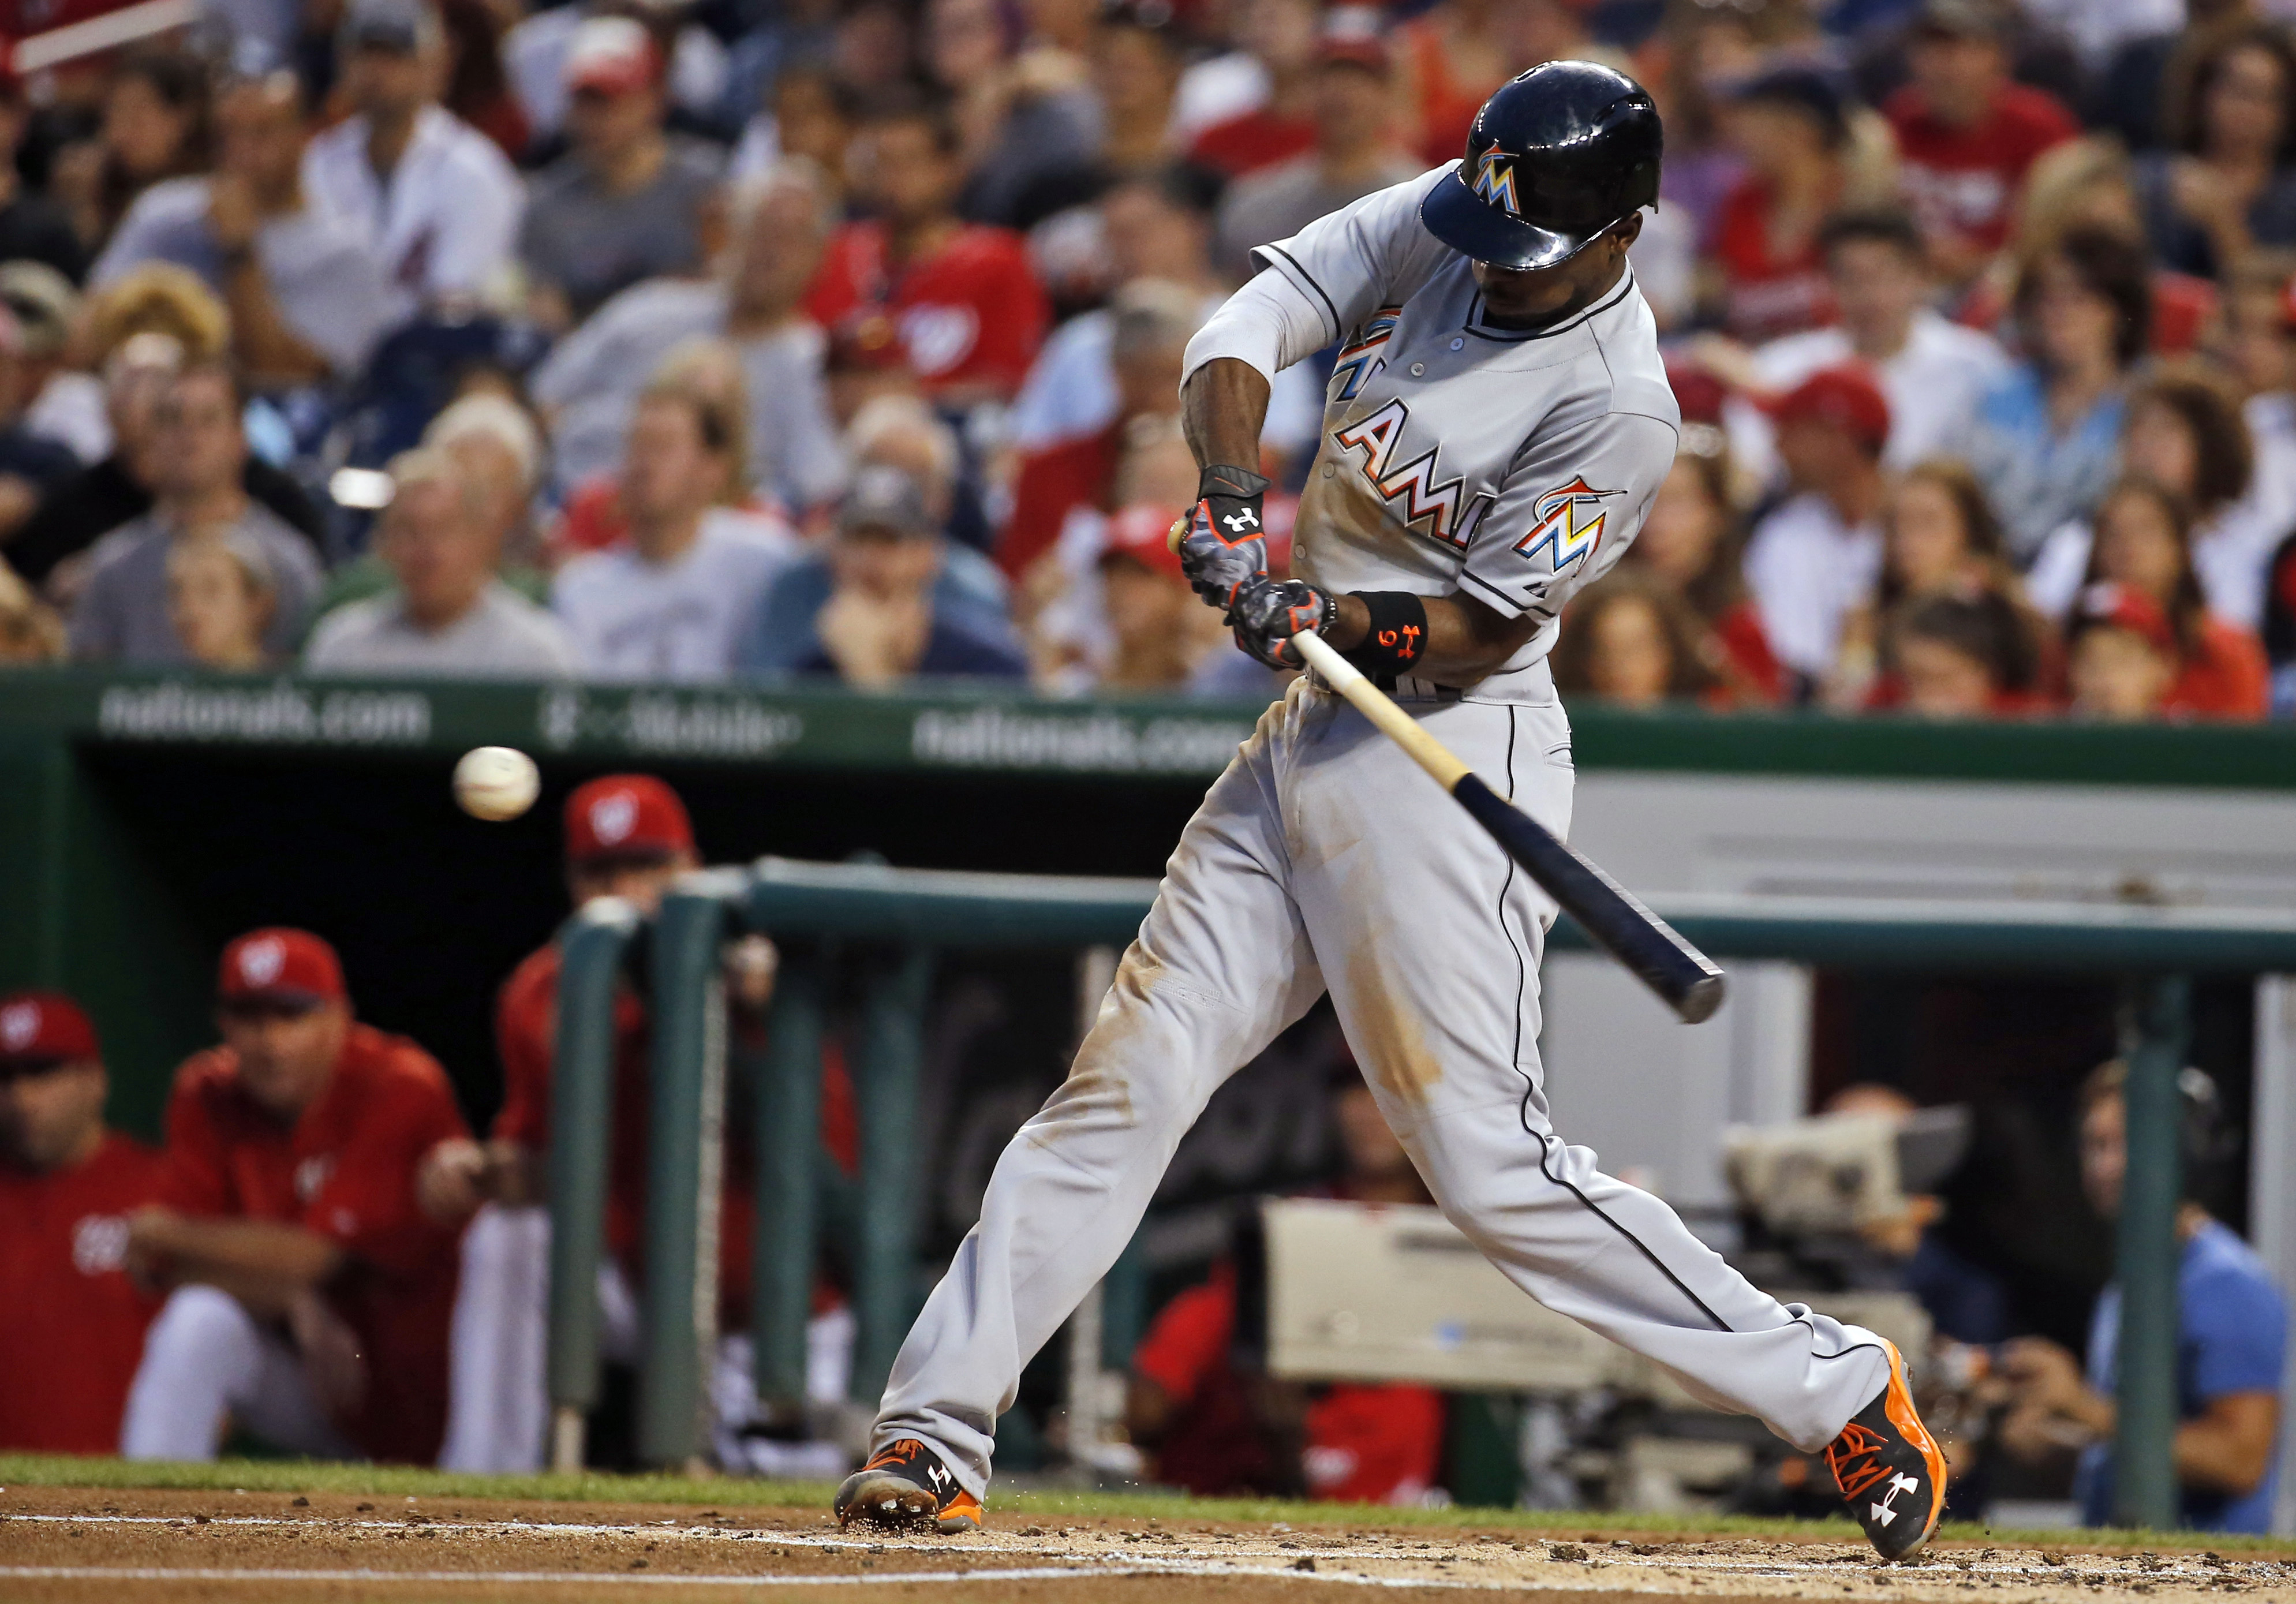 Miami Marlins' Dee Gordon hits a double during the third inning of a baseball game against the Washington Nationals at Nationals Park, Saturday, Aug. 29, 2015, in Washington.  (AP Photo/Alex Brandon)